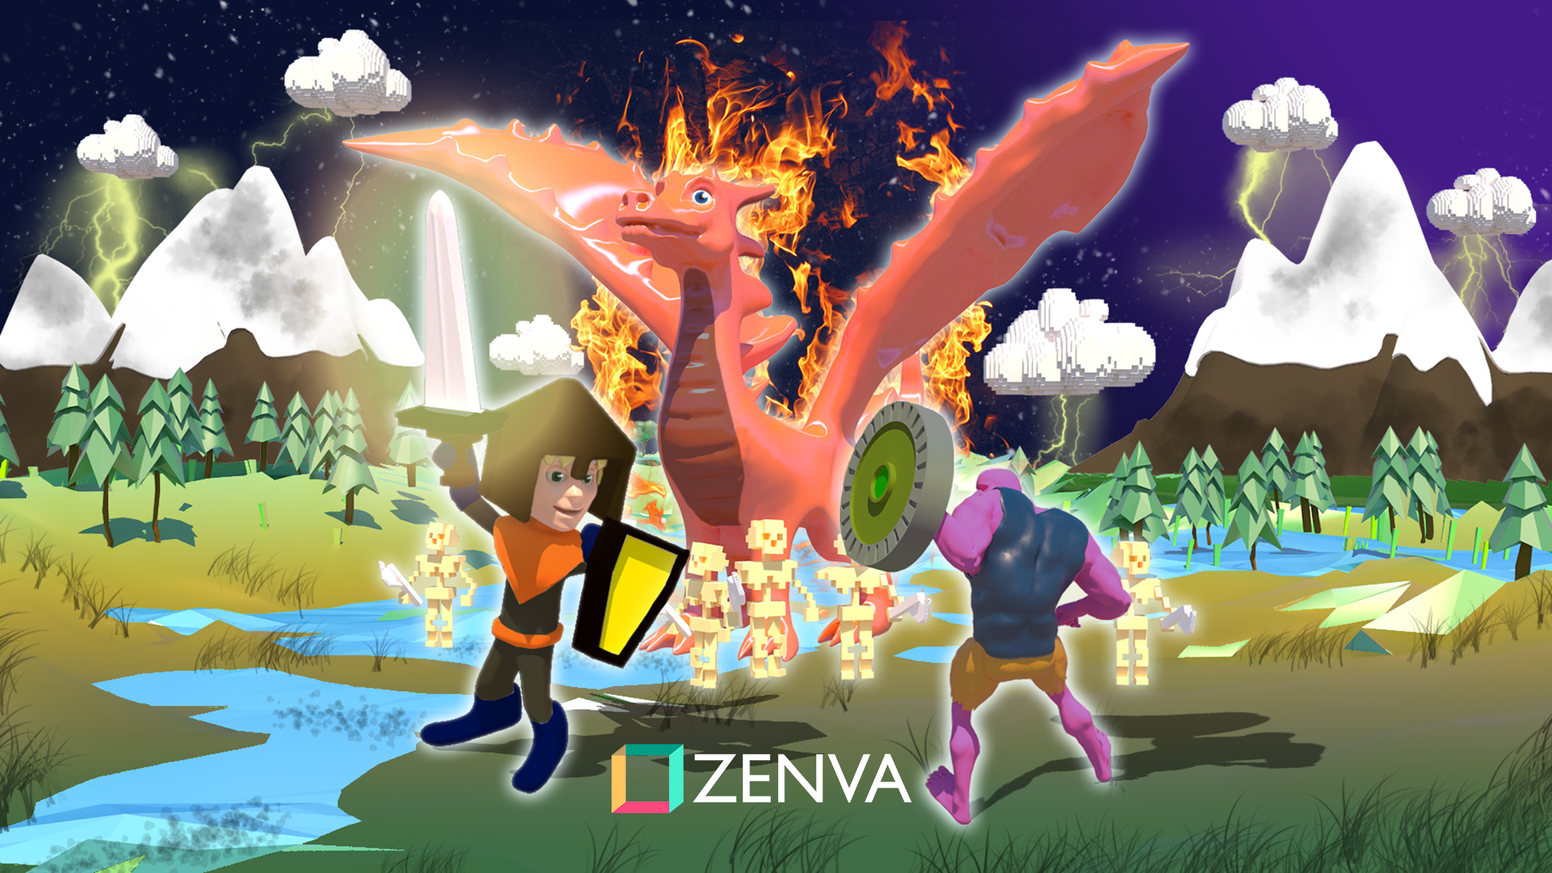 RPG Academy - From Zero to Creating Games by Zenva — Kickstarter